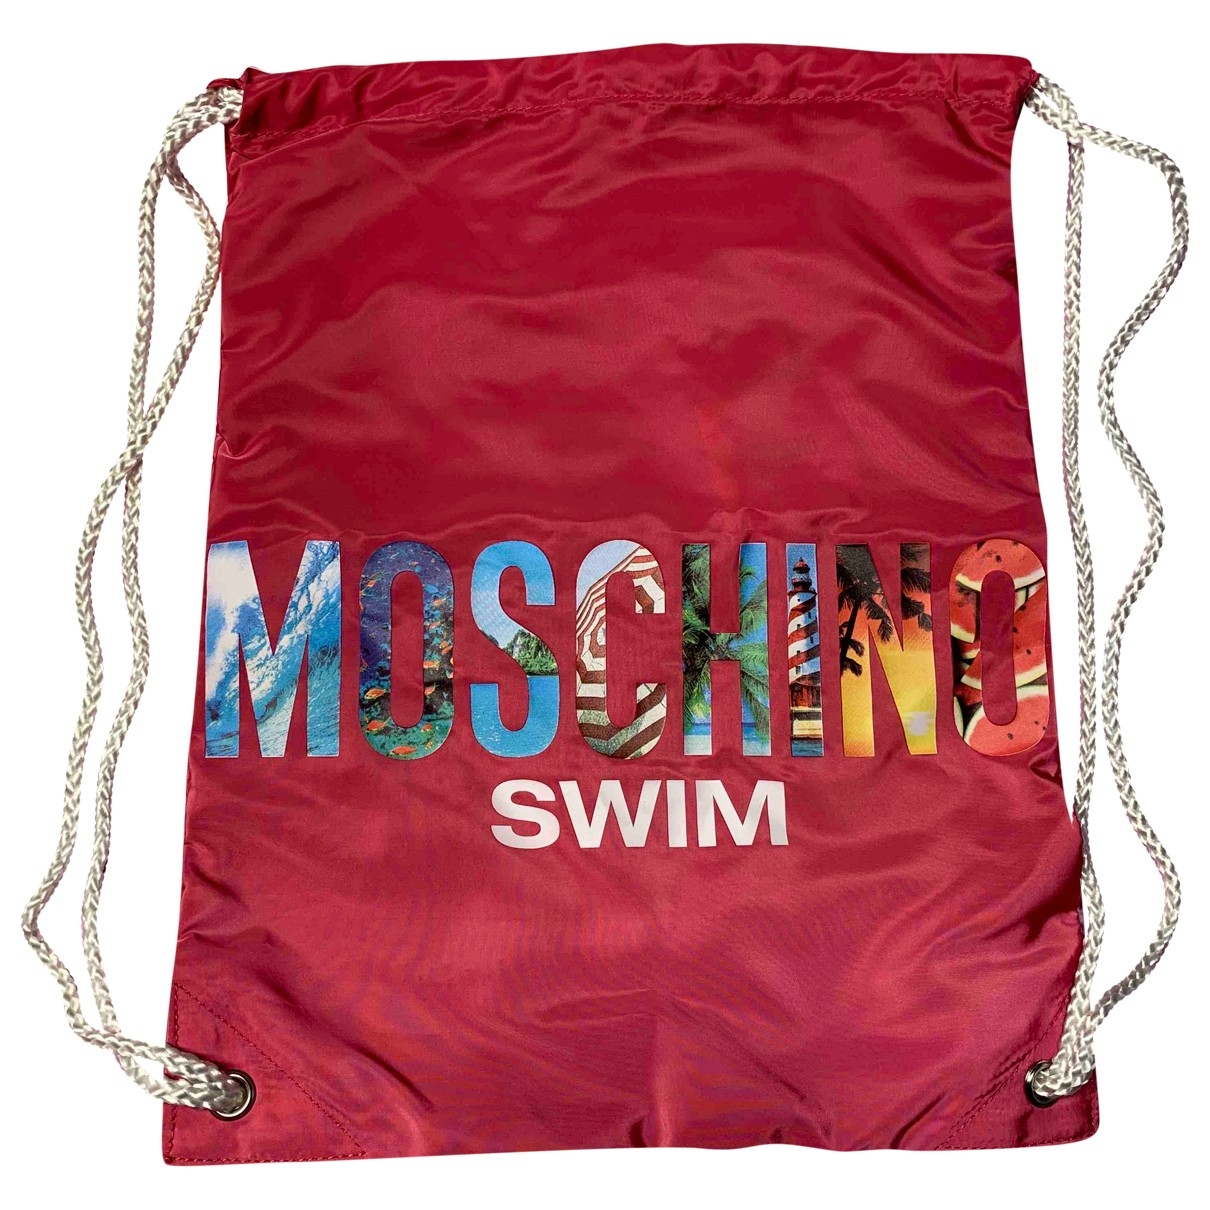 Moschino \N Rucksaecke in  Rosa Synthetik